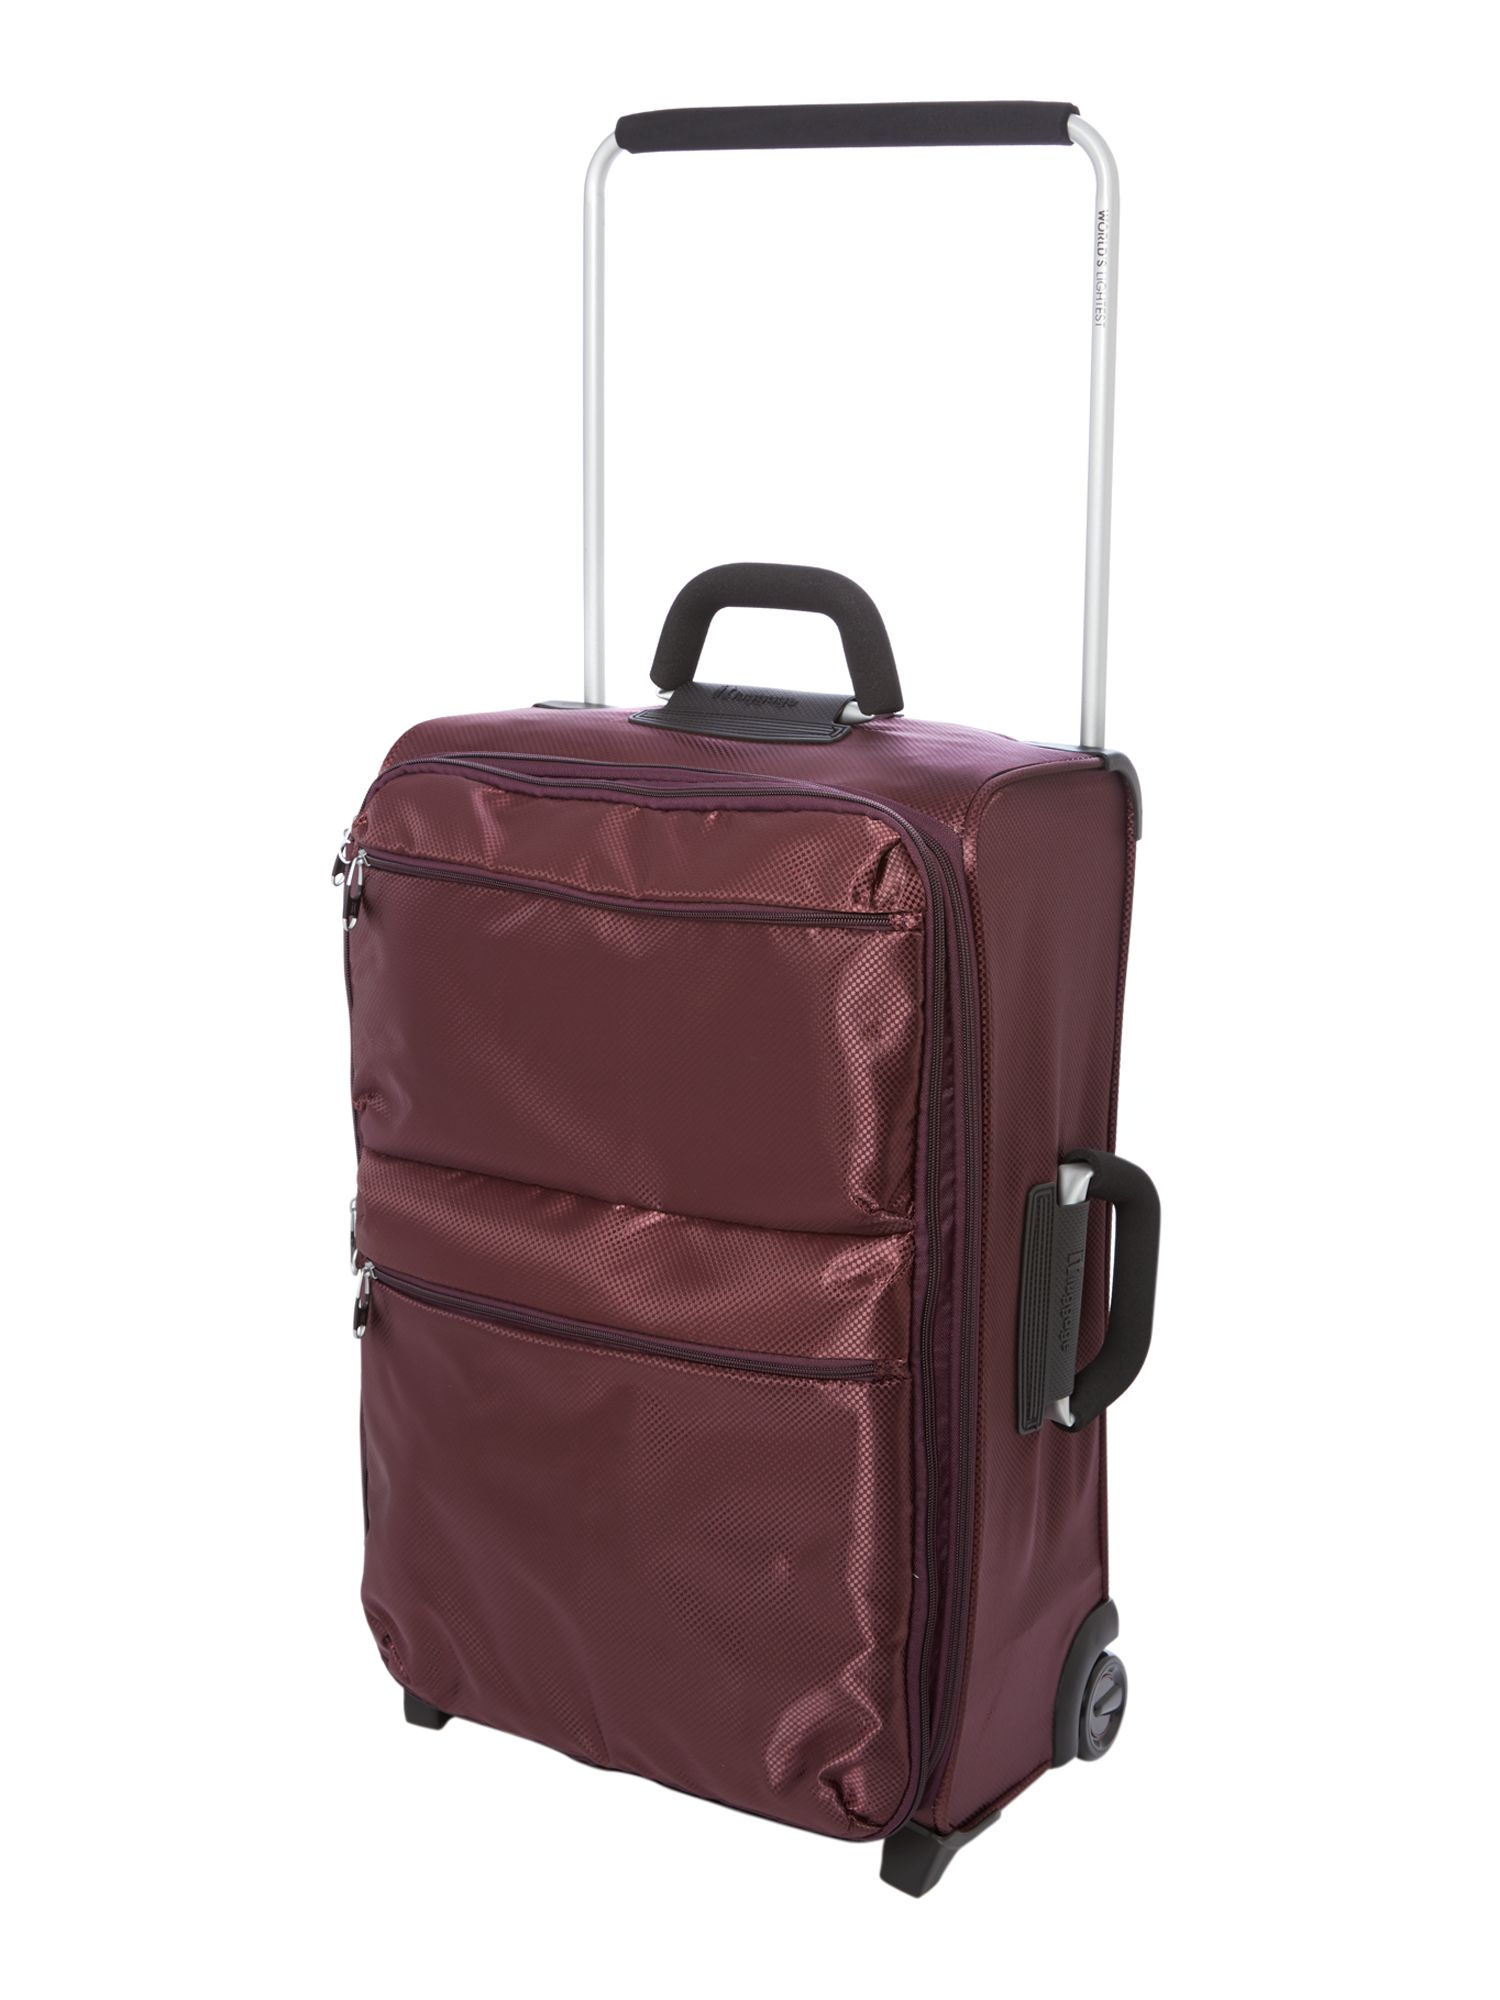 IT aubergine 2 wheels soft medium suitcase